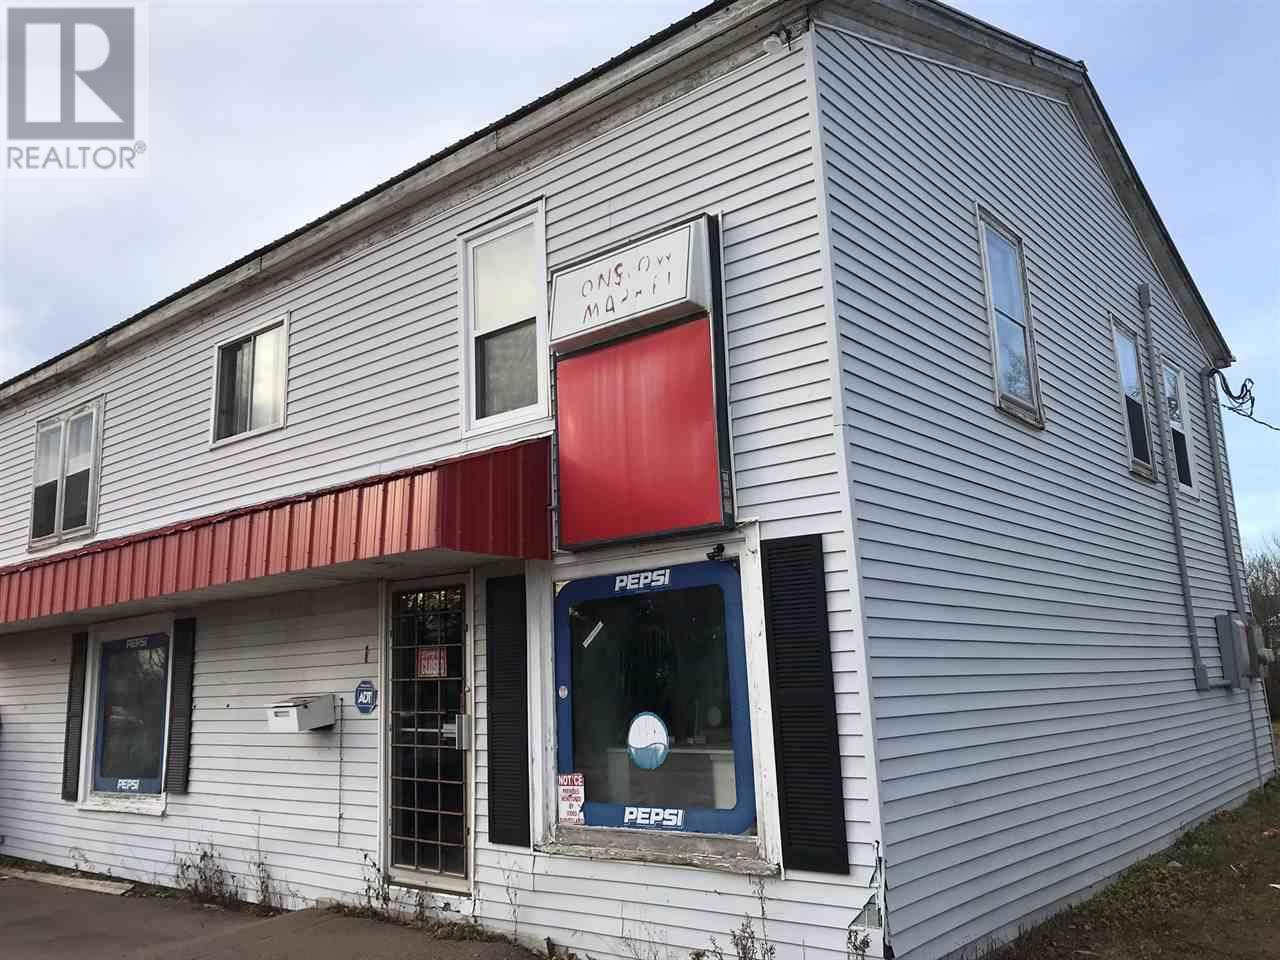 Townhouse for sale at 1 Onslow Rd Central Onslow Nova Scotia - MLS: 201927245